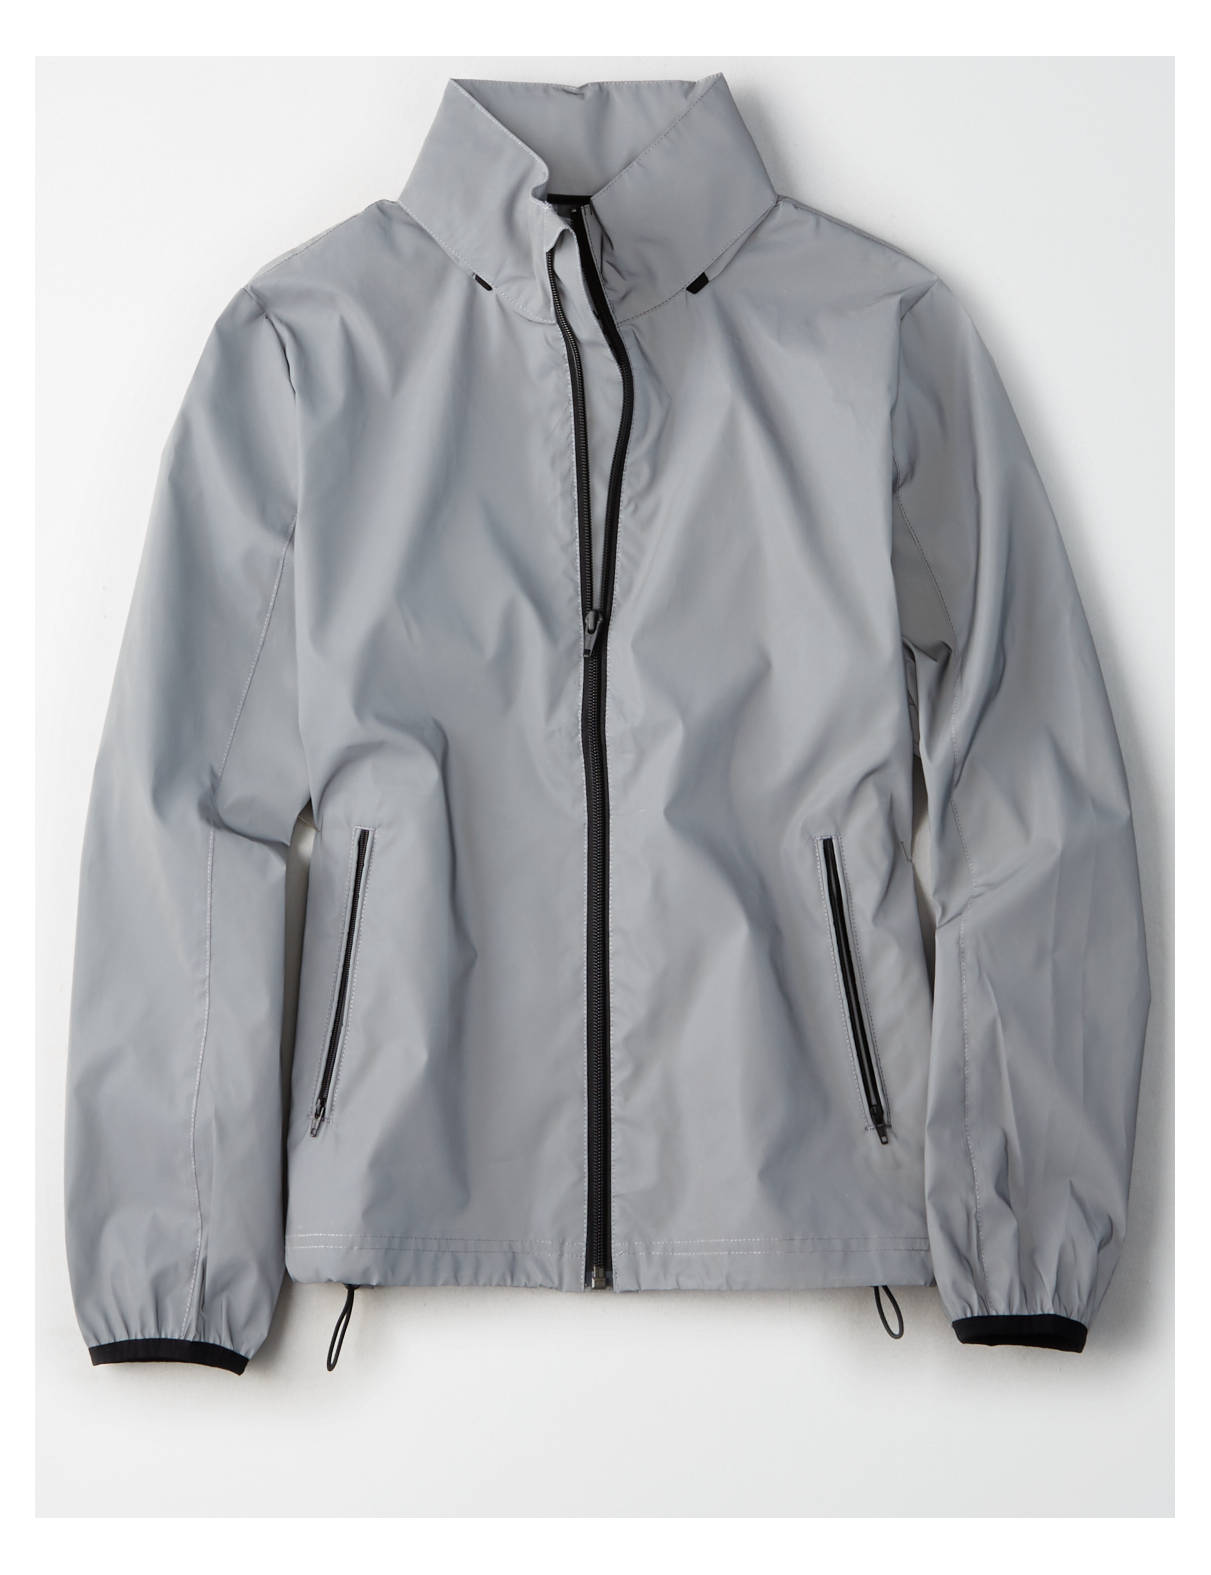 Display product reviews for AE Reflective Metallic Windbreaker